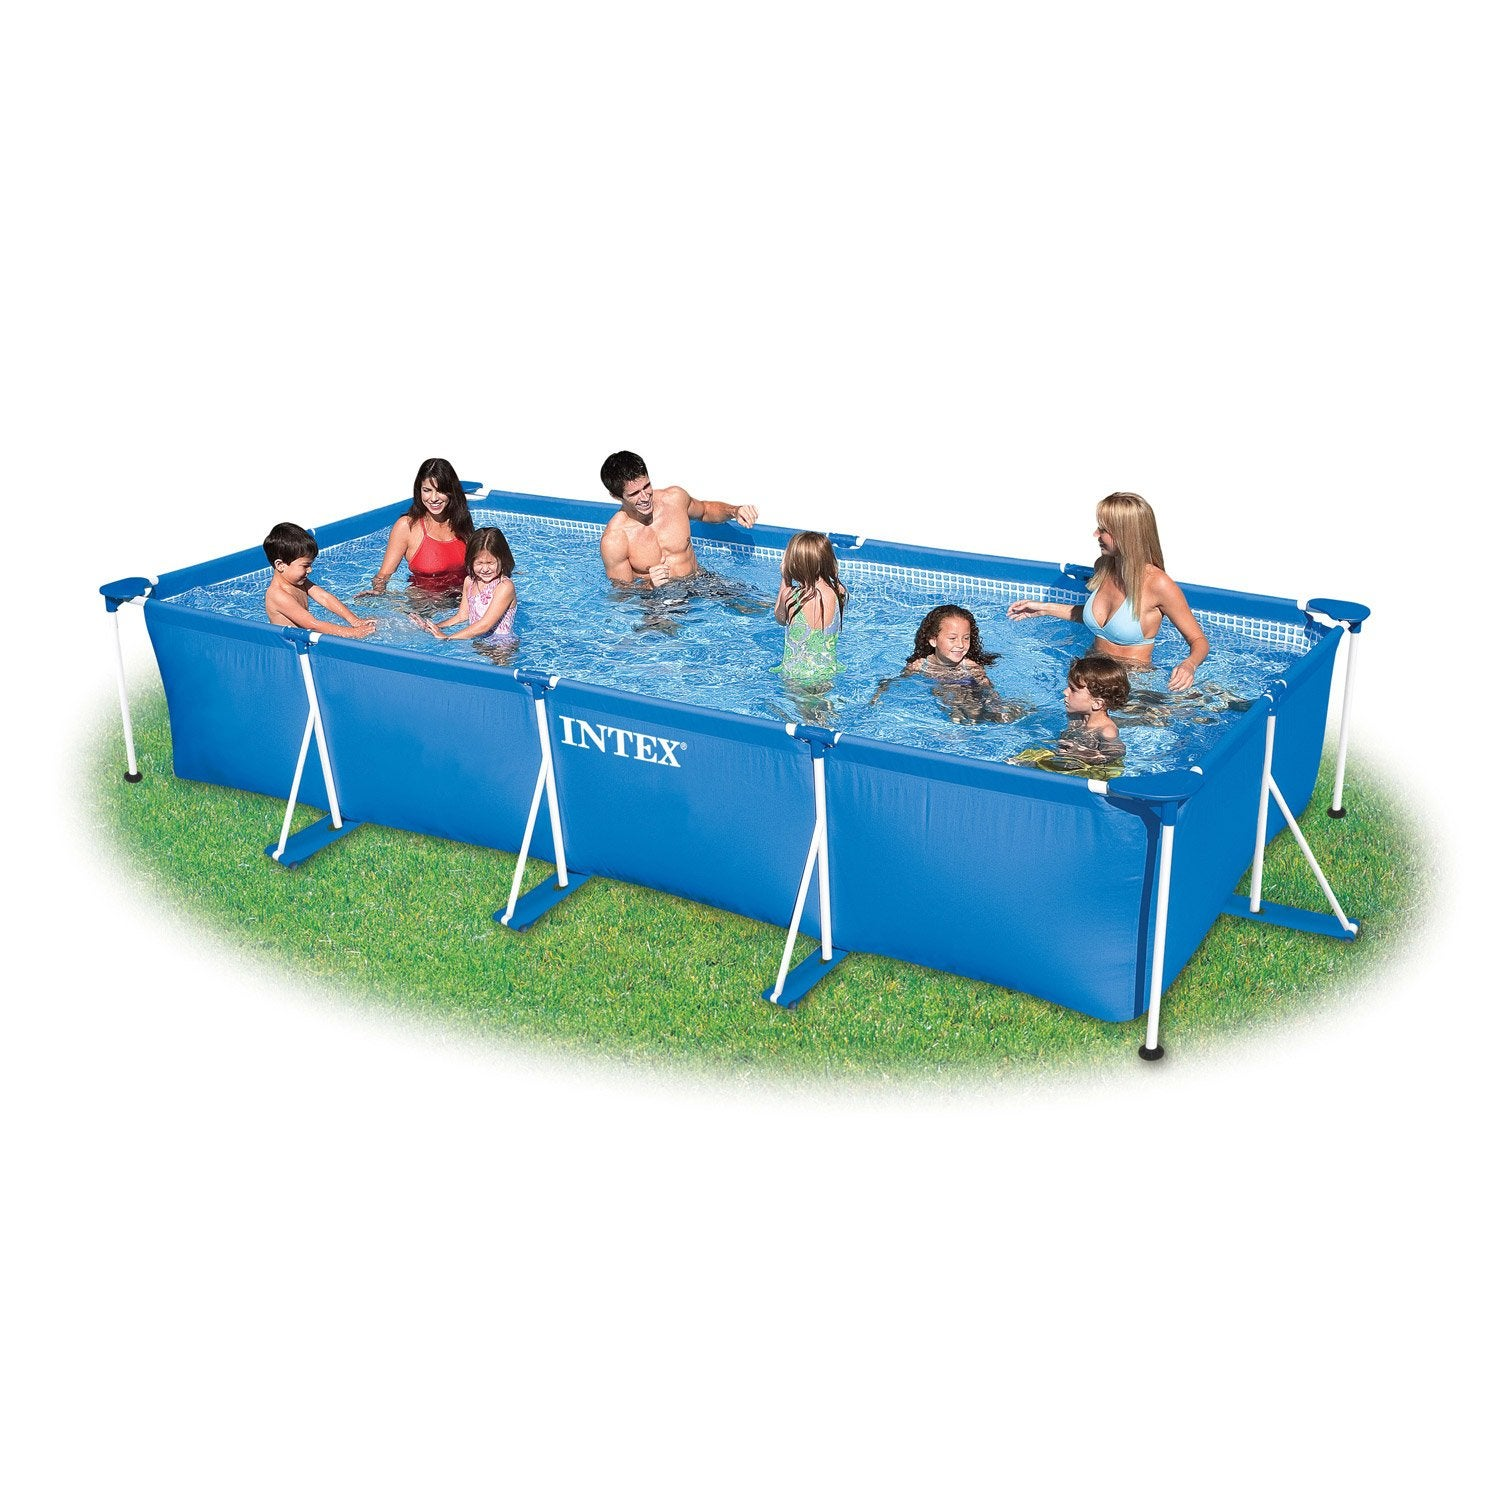 Piscine hors sol autoportante tubulaire intex l x l for Piscine hors sol intex prix